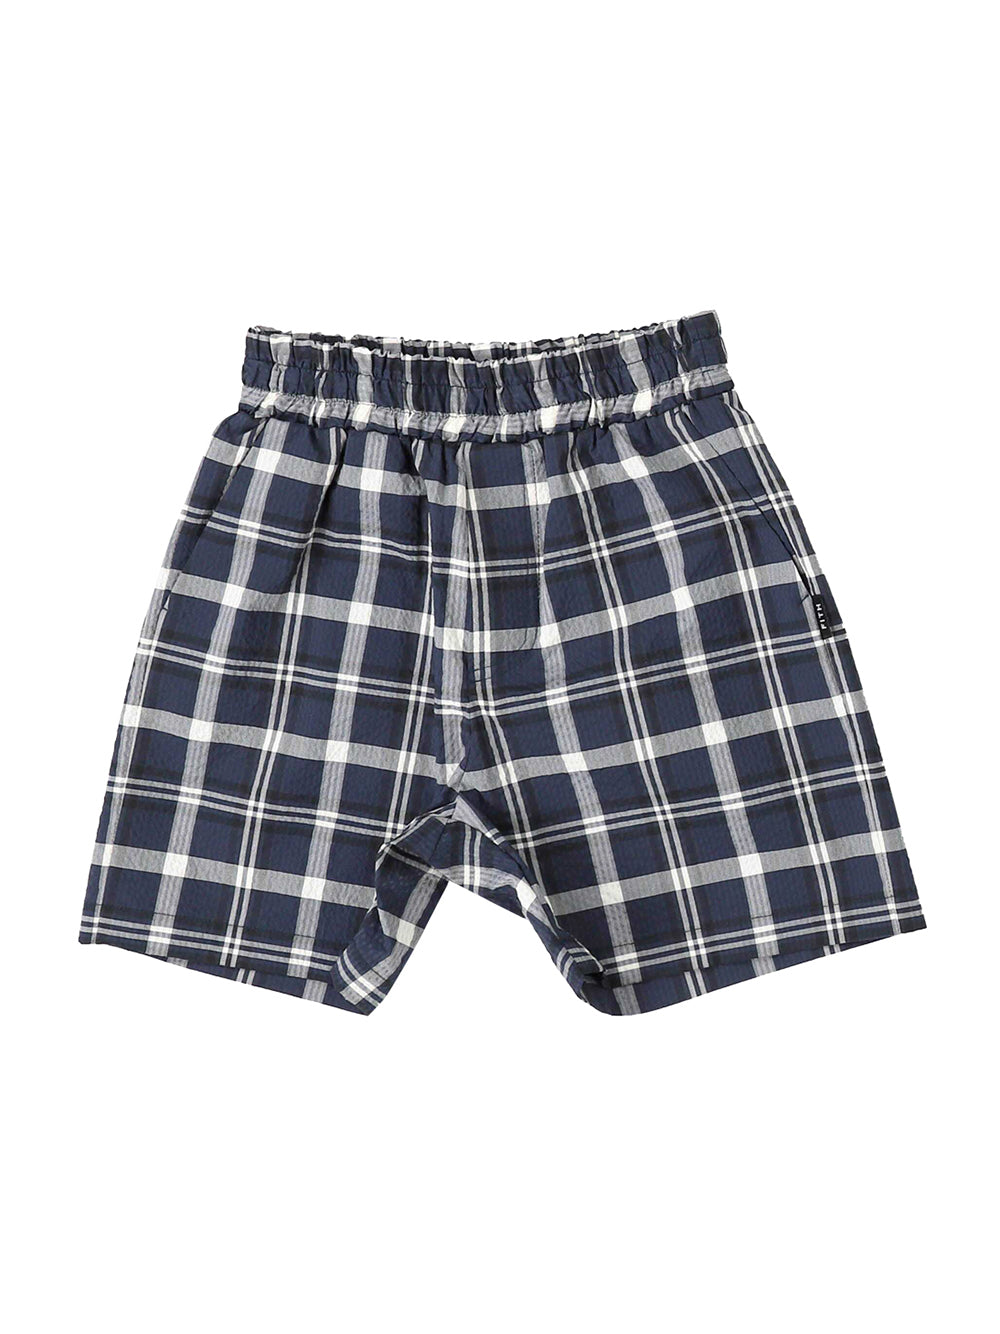 Coolmax Navy Checked Shorts